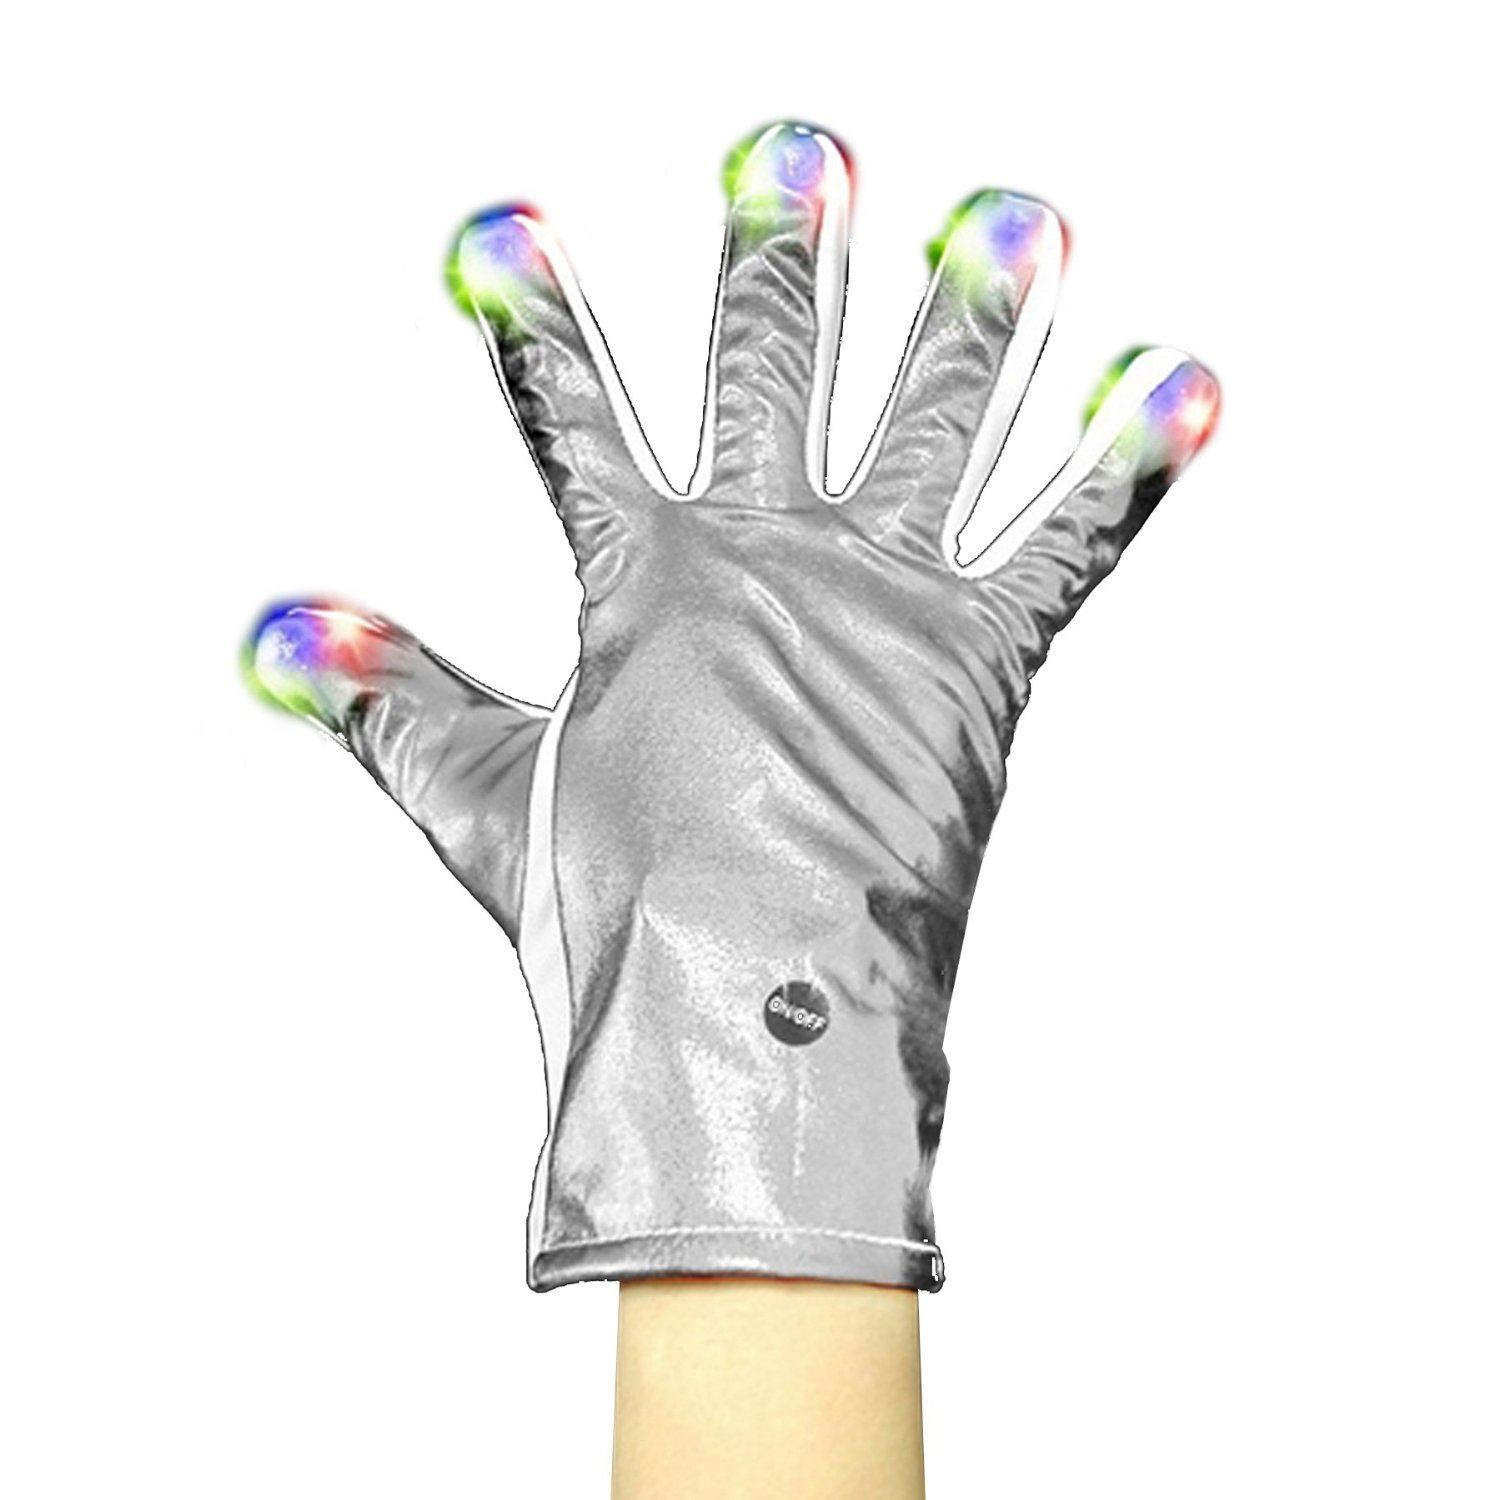 Magic Led Glove - 1 Glove Supplied